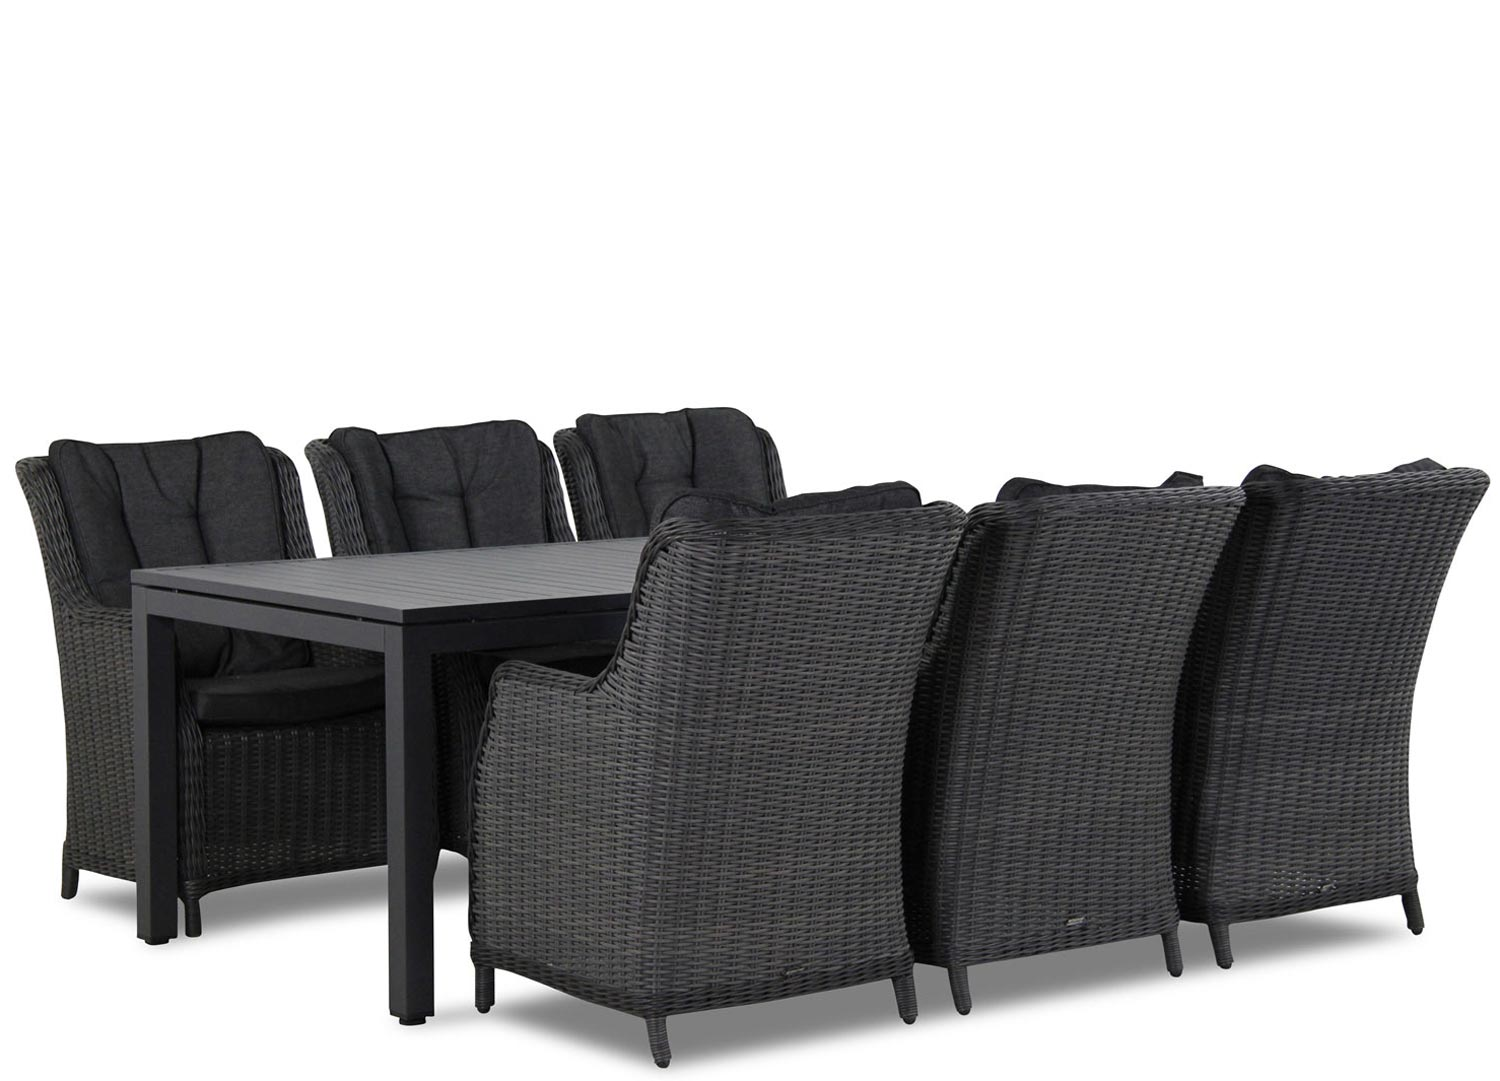 Wicker Garden Collections Buckingham/Concept 220 cm dining tuinset 7-delig